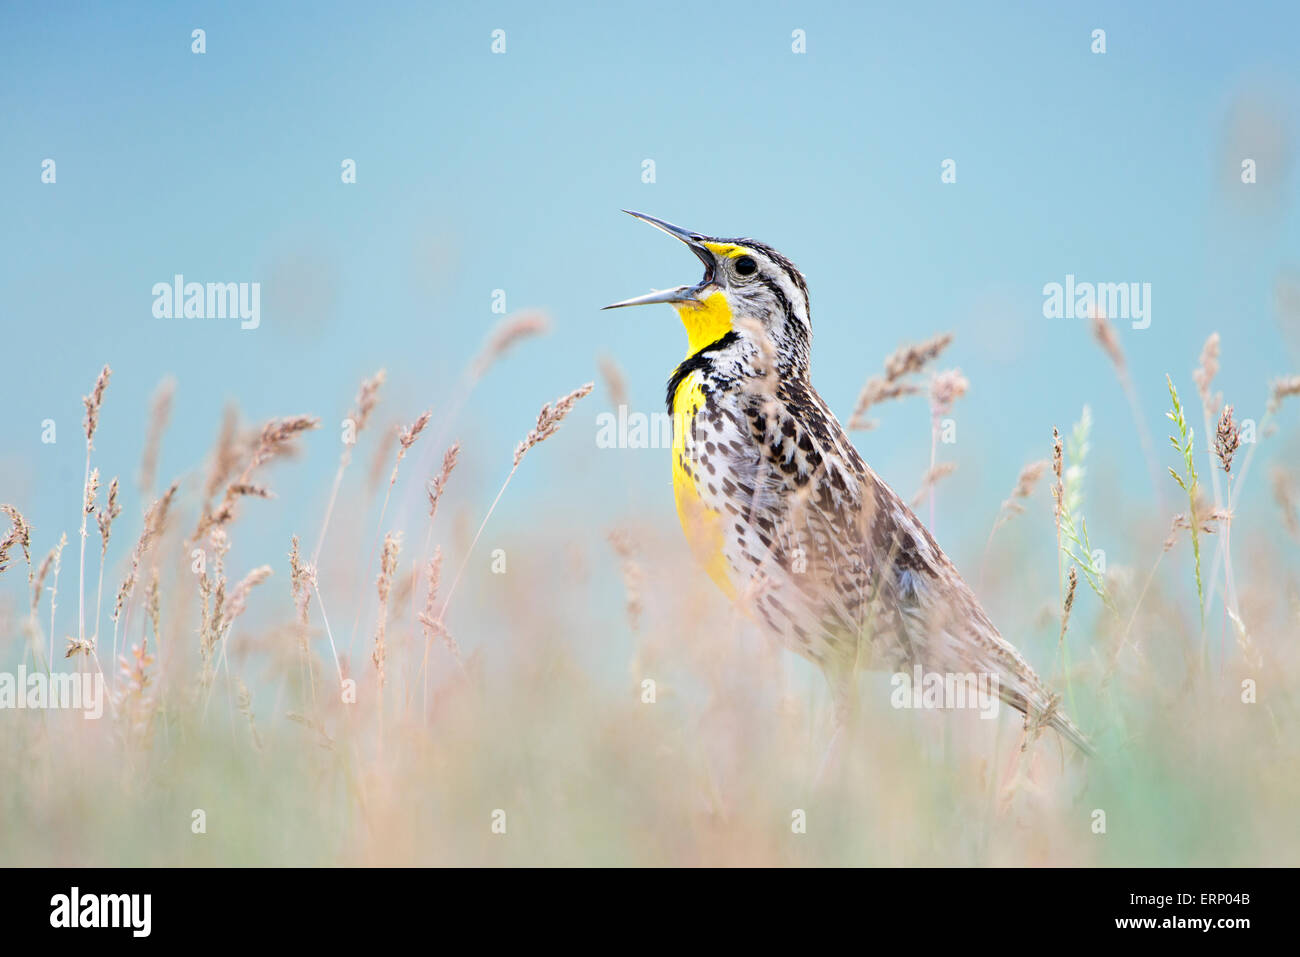 A western meadowlark (Sturnella neglecta) sings to alert rivals and potential mates of his presence, Western Montana - Stock Image